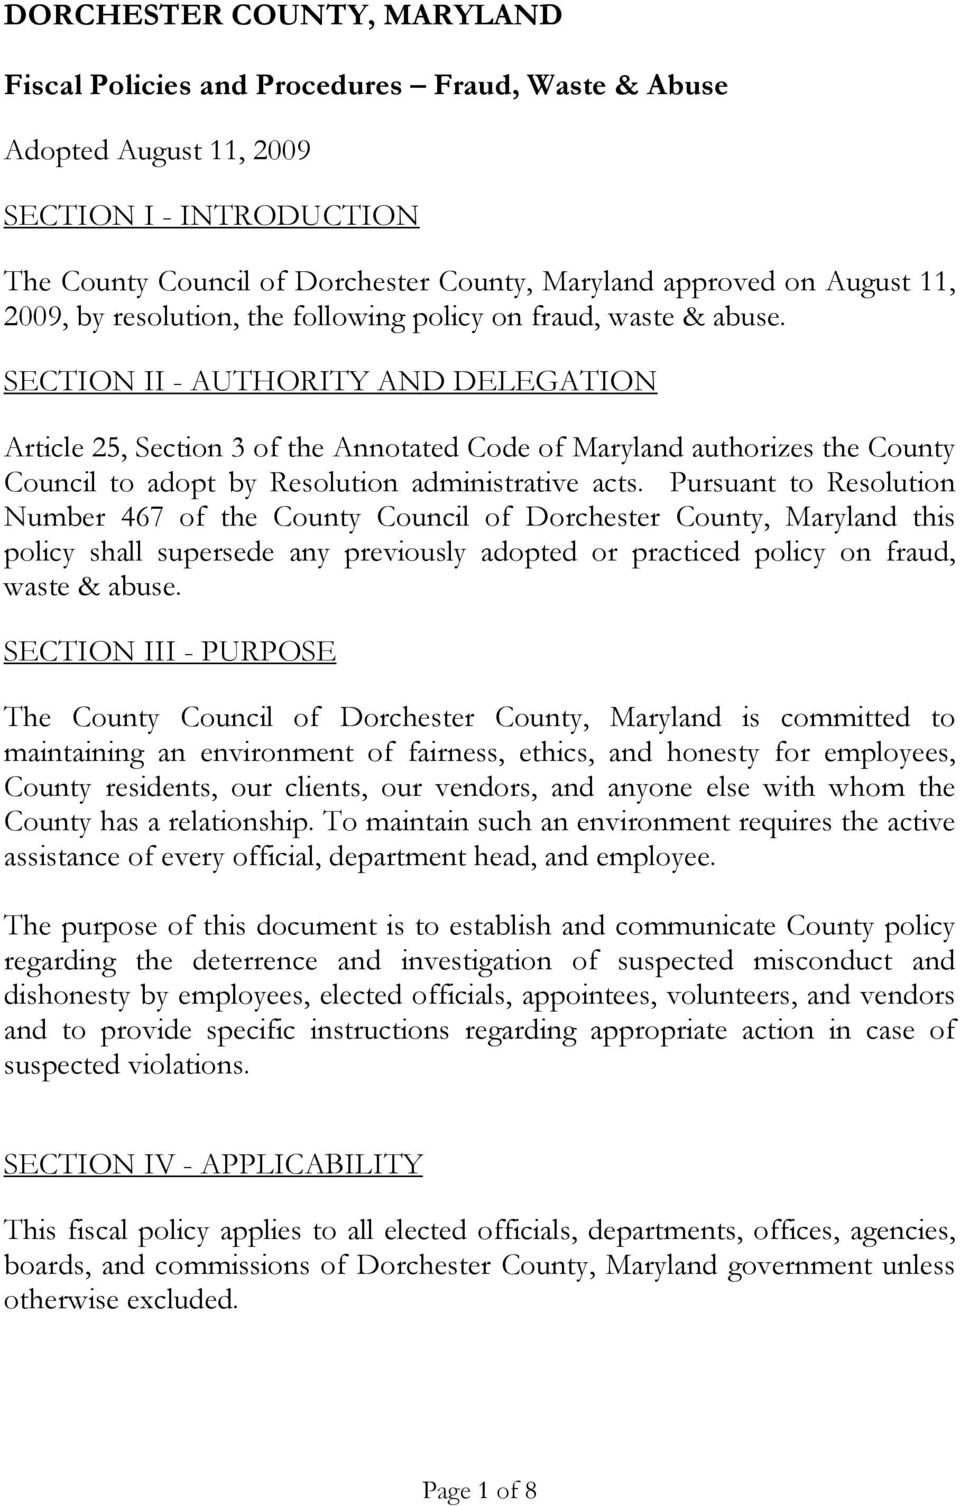 SECTION II - AUTHORITY AND DELEGATION Article 25, Section 3 of the Annotated Code of Maryland authorizes the County Council to adopt by Resolution administrative acts.